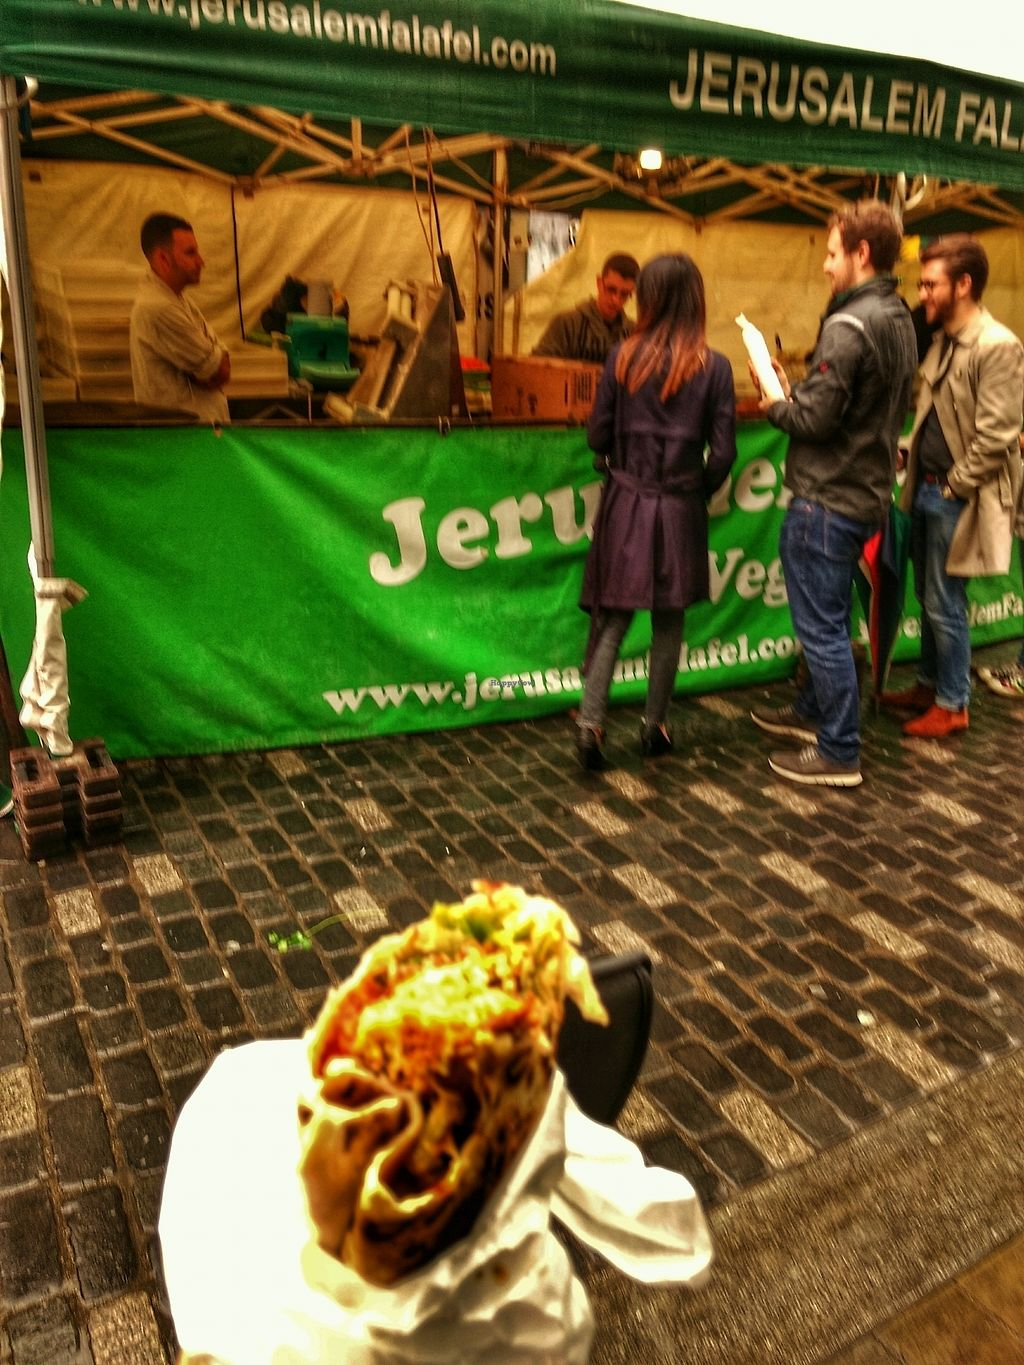 """Photo of Jerusalem Falafel - Food Stall  by <a href=""""/members/profile/craigmc"""">craigmc</a> <br/>yum <br/> October 19, 2017  - <a href='/contact/abuse/image/77117/316571'>Report</a>"""